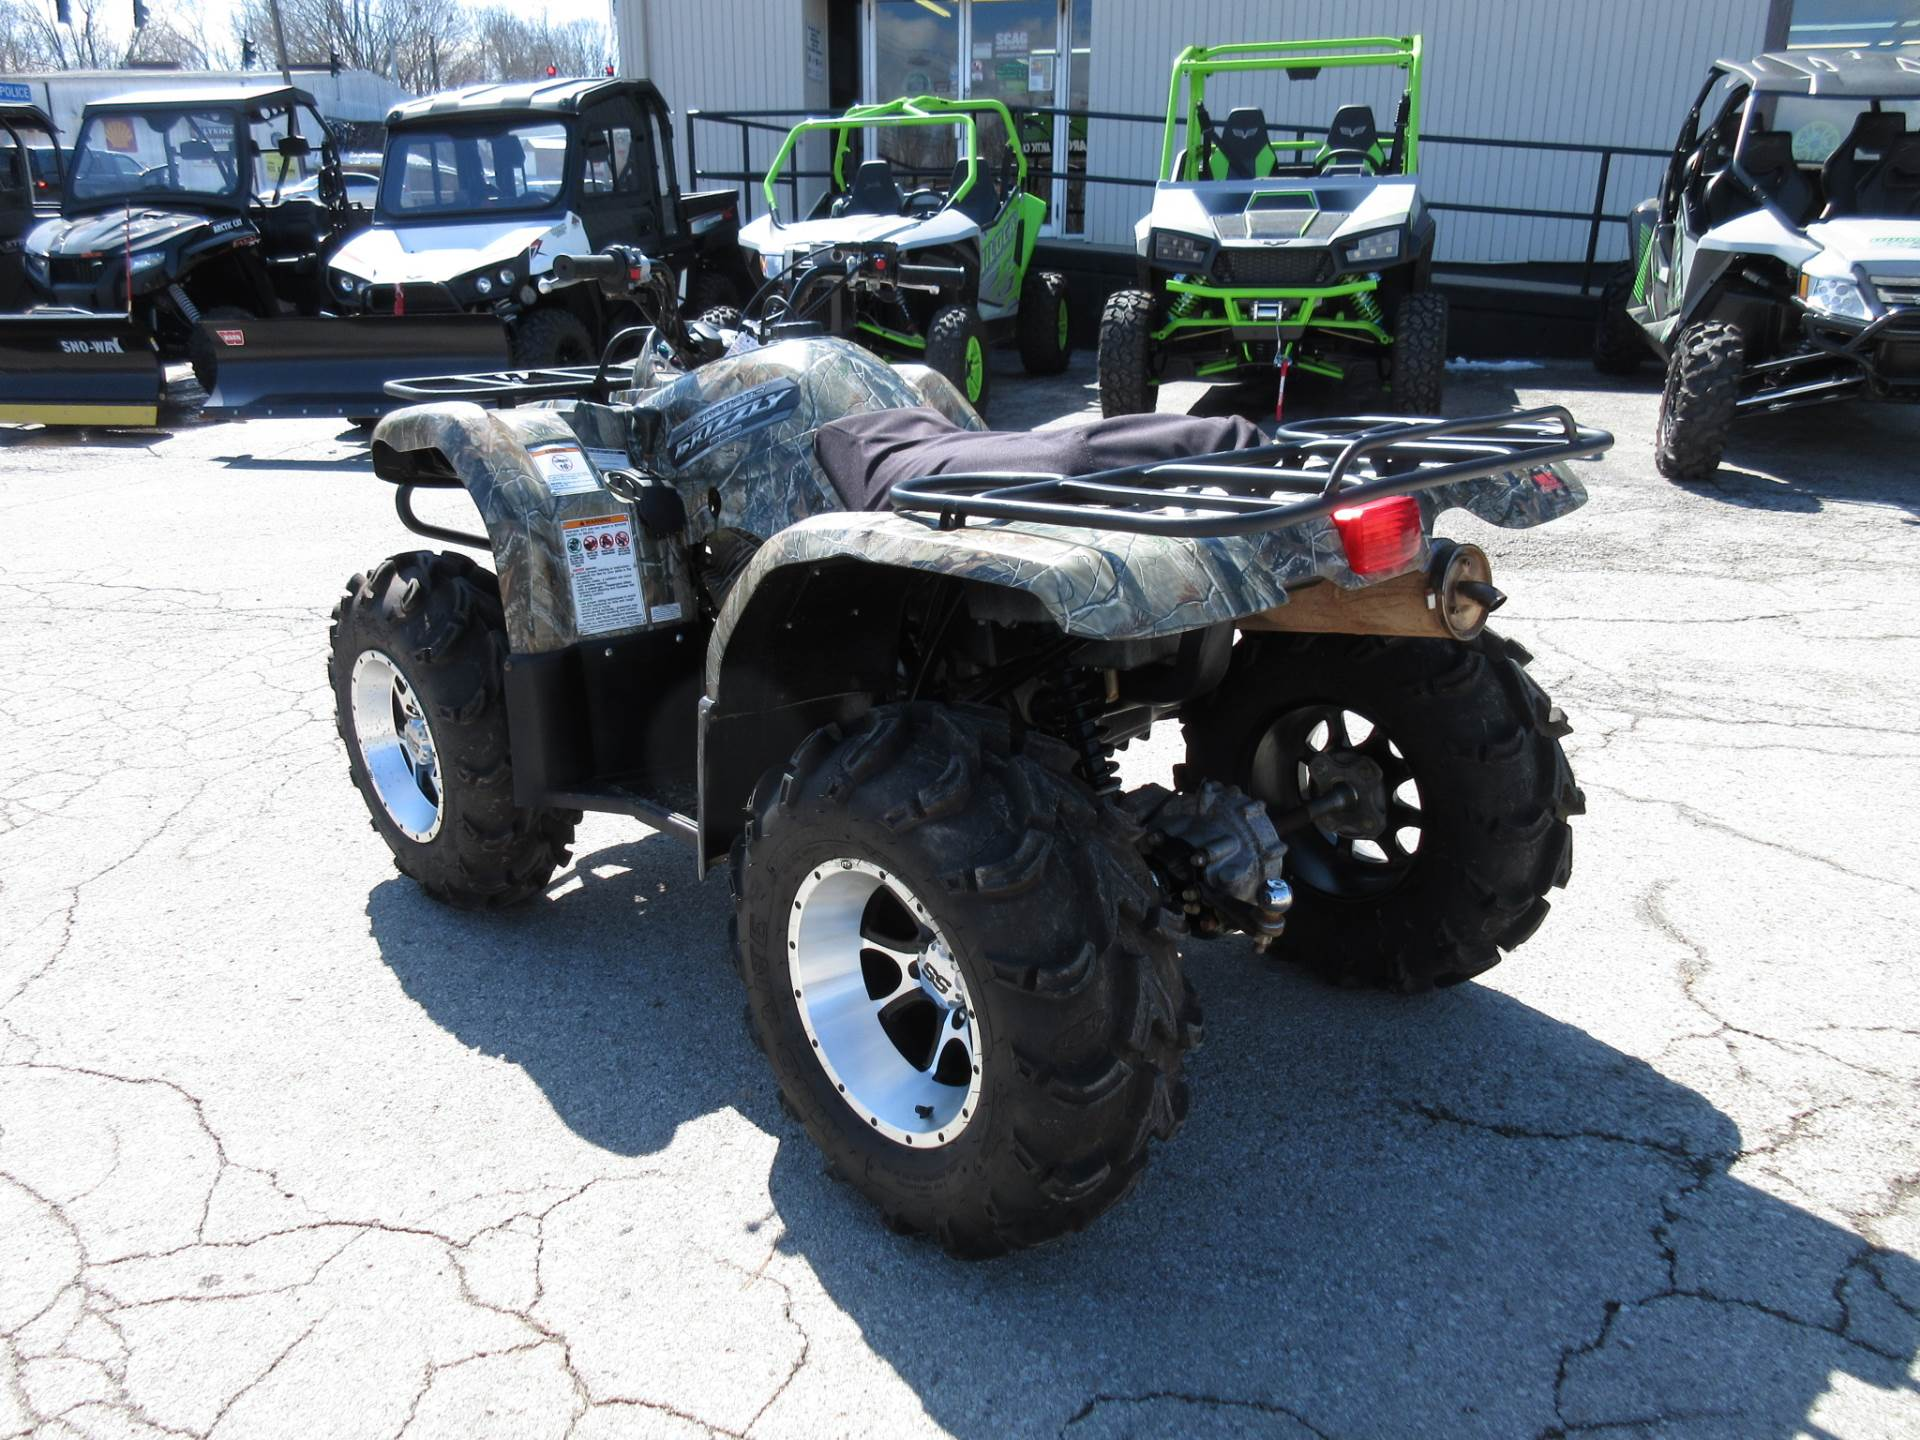 2012 yamaha grizzly 350 auto 4x4 ebay for Yamaha 350 grizzly